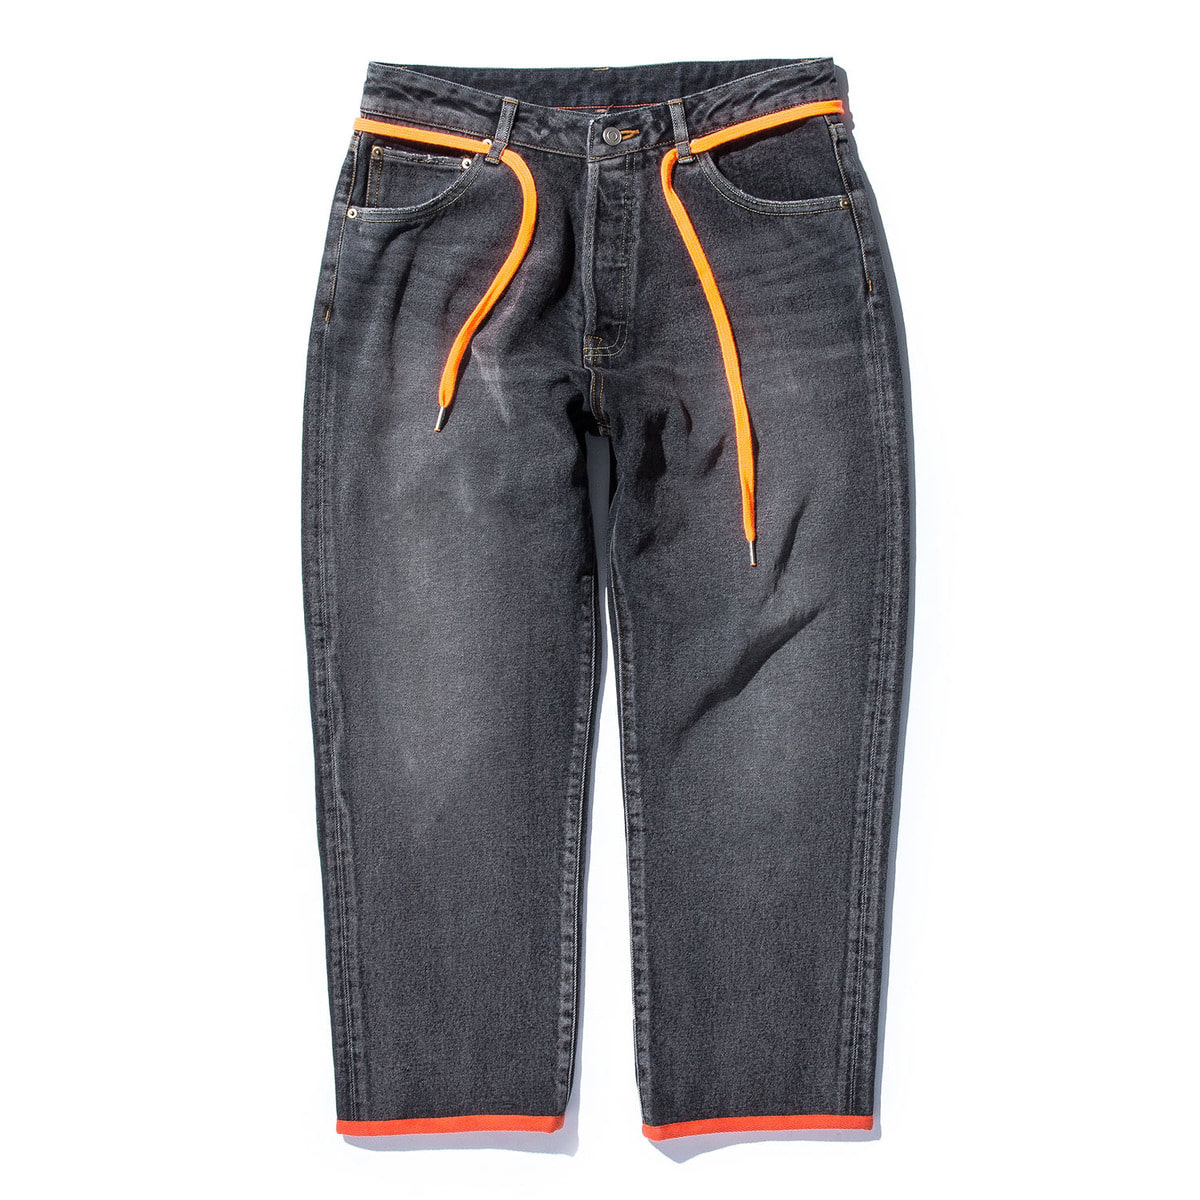 Cropped Pt (12.5oz Washed Denim) (B4) Black & Orange